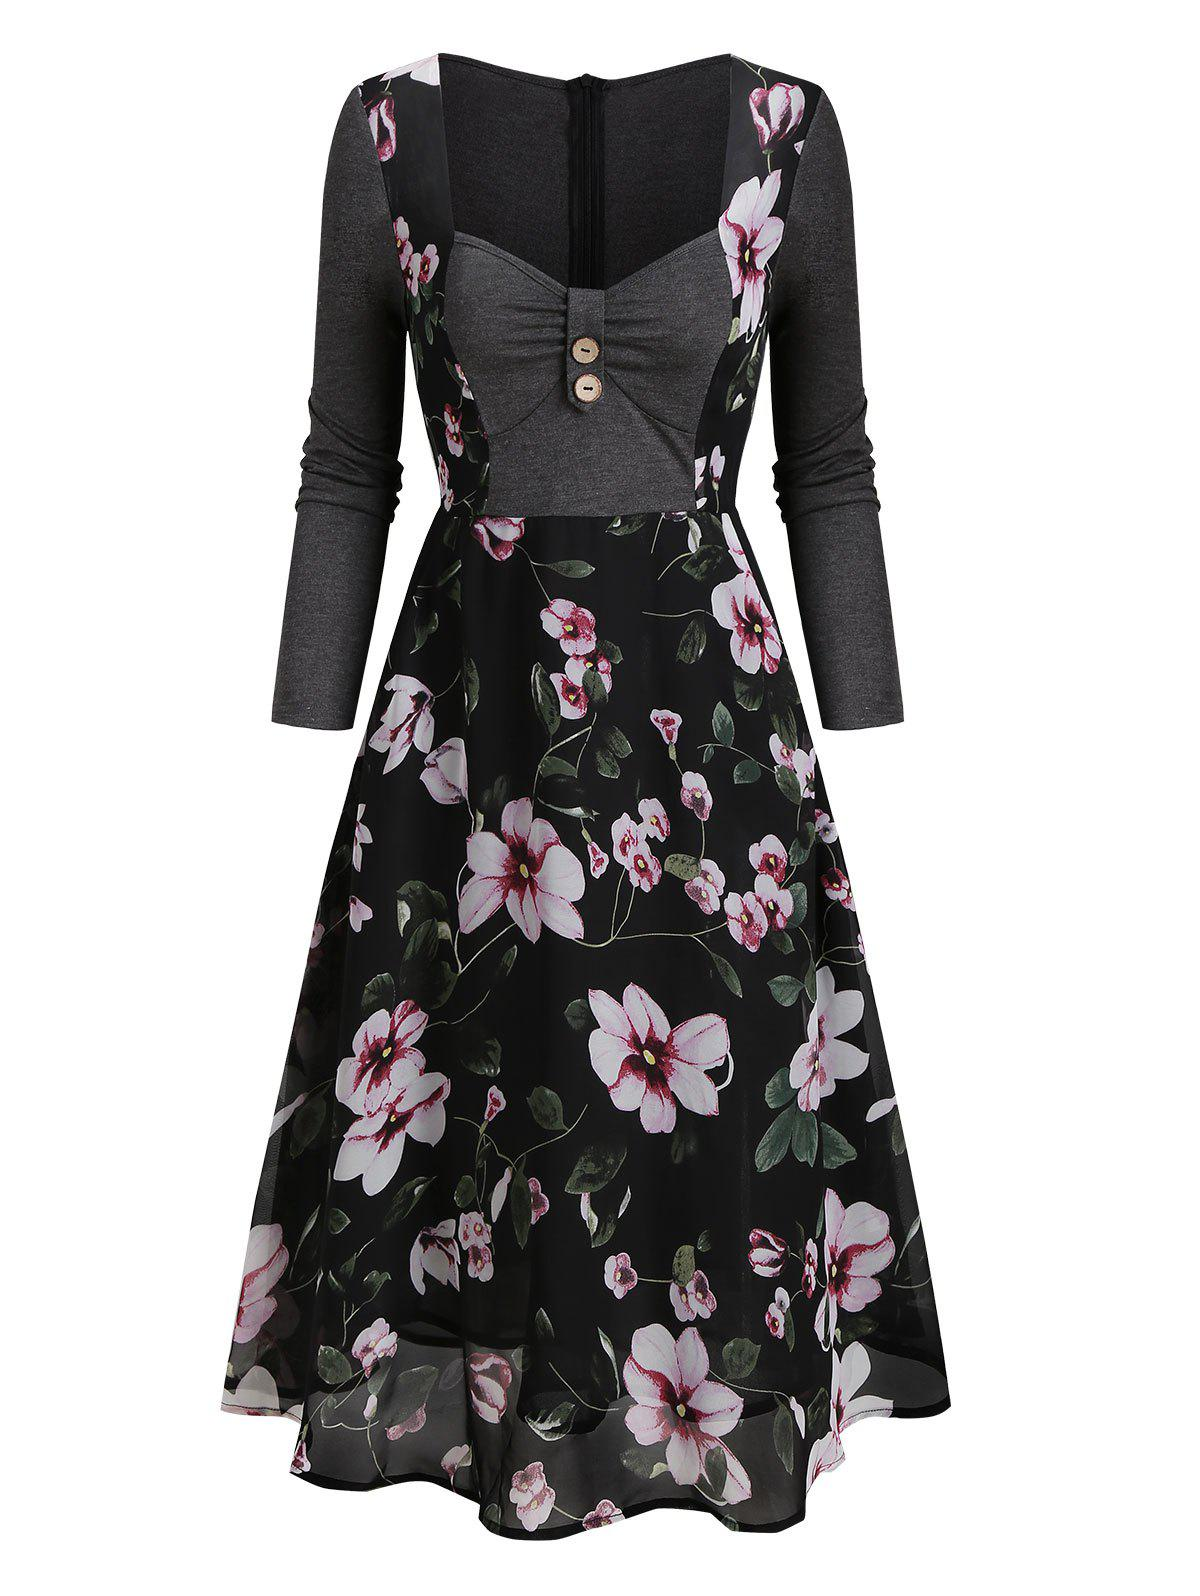 Discount Floral Print Sweetheart Neck Overlay Mesh Dress